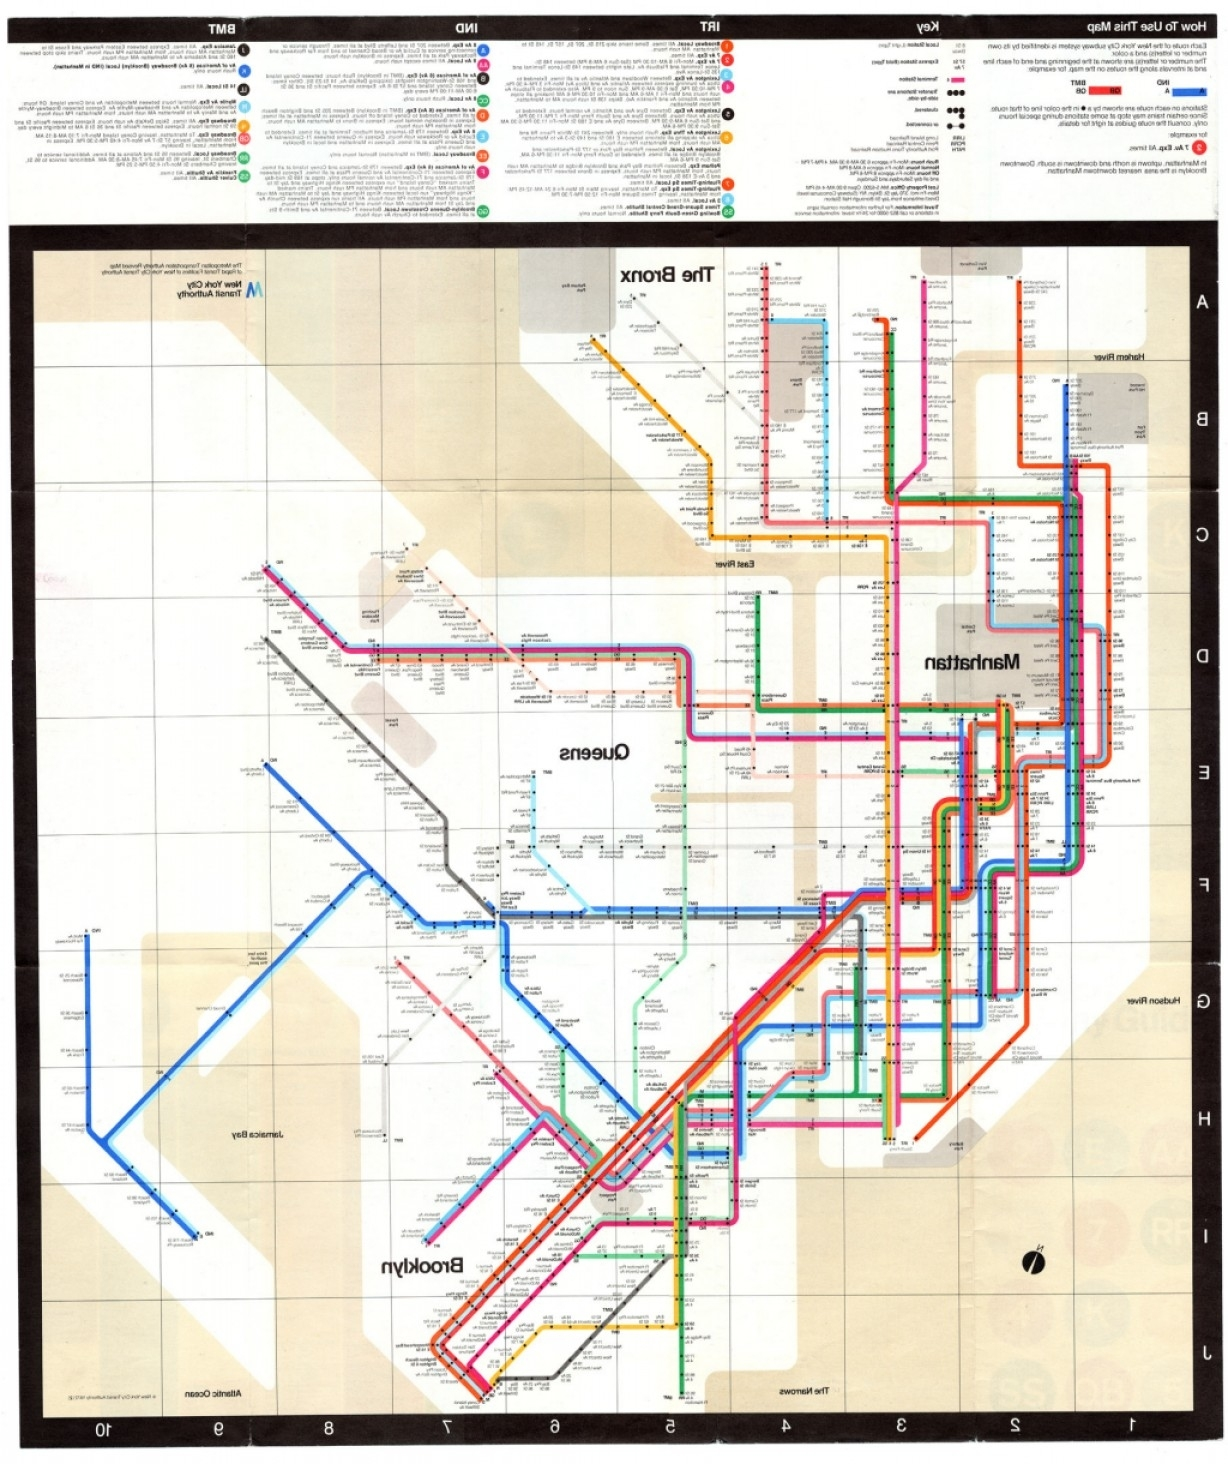 Mapcarte New York City Subway Mapmassimo Vignelli throughout Vignelli Super Bowl Map